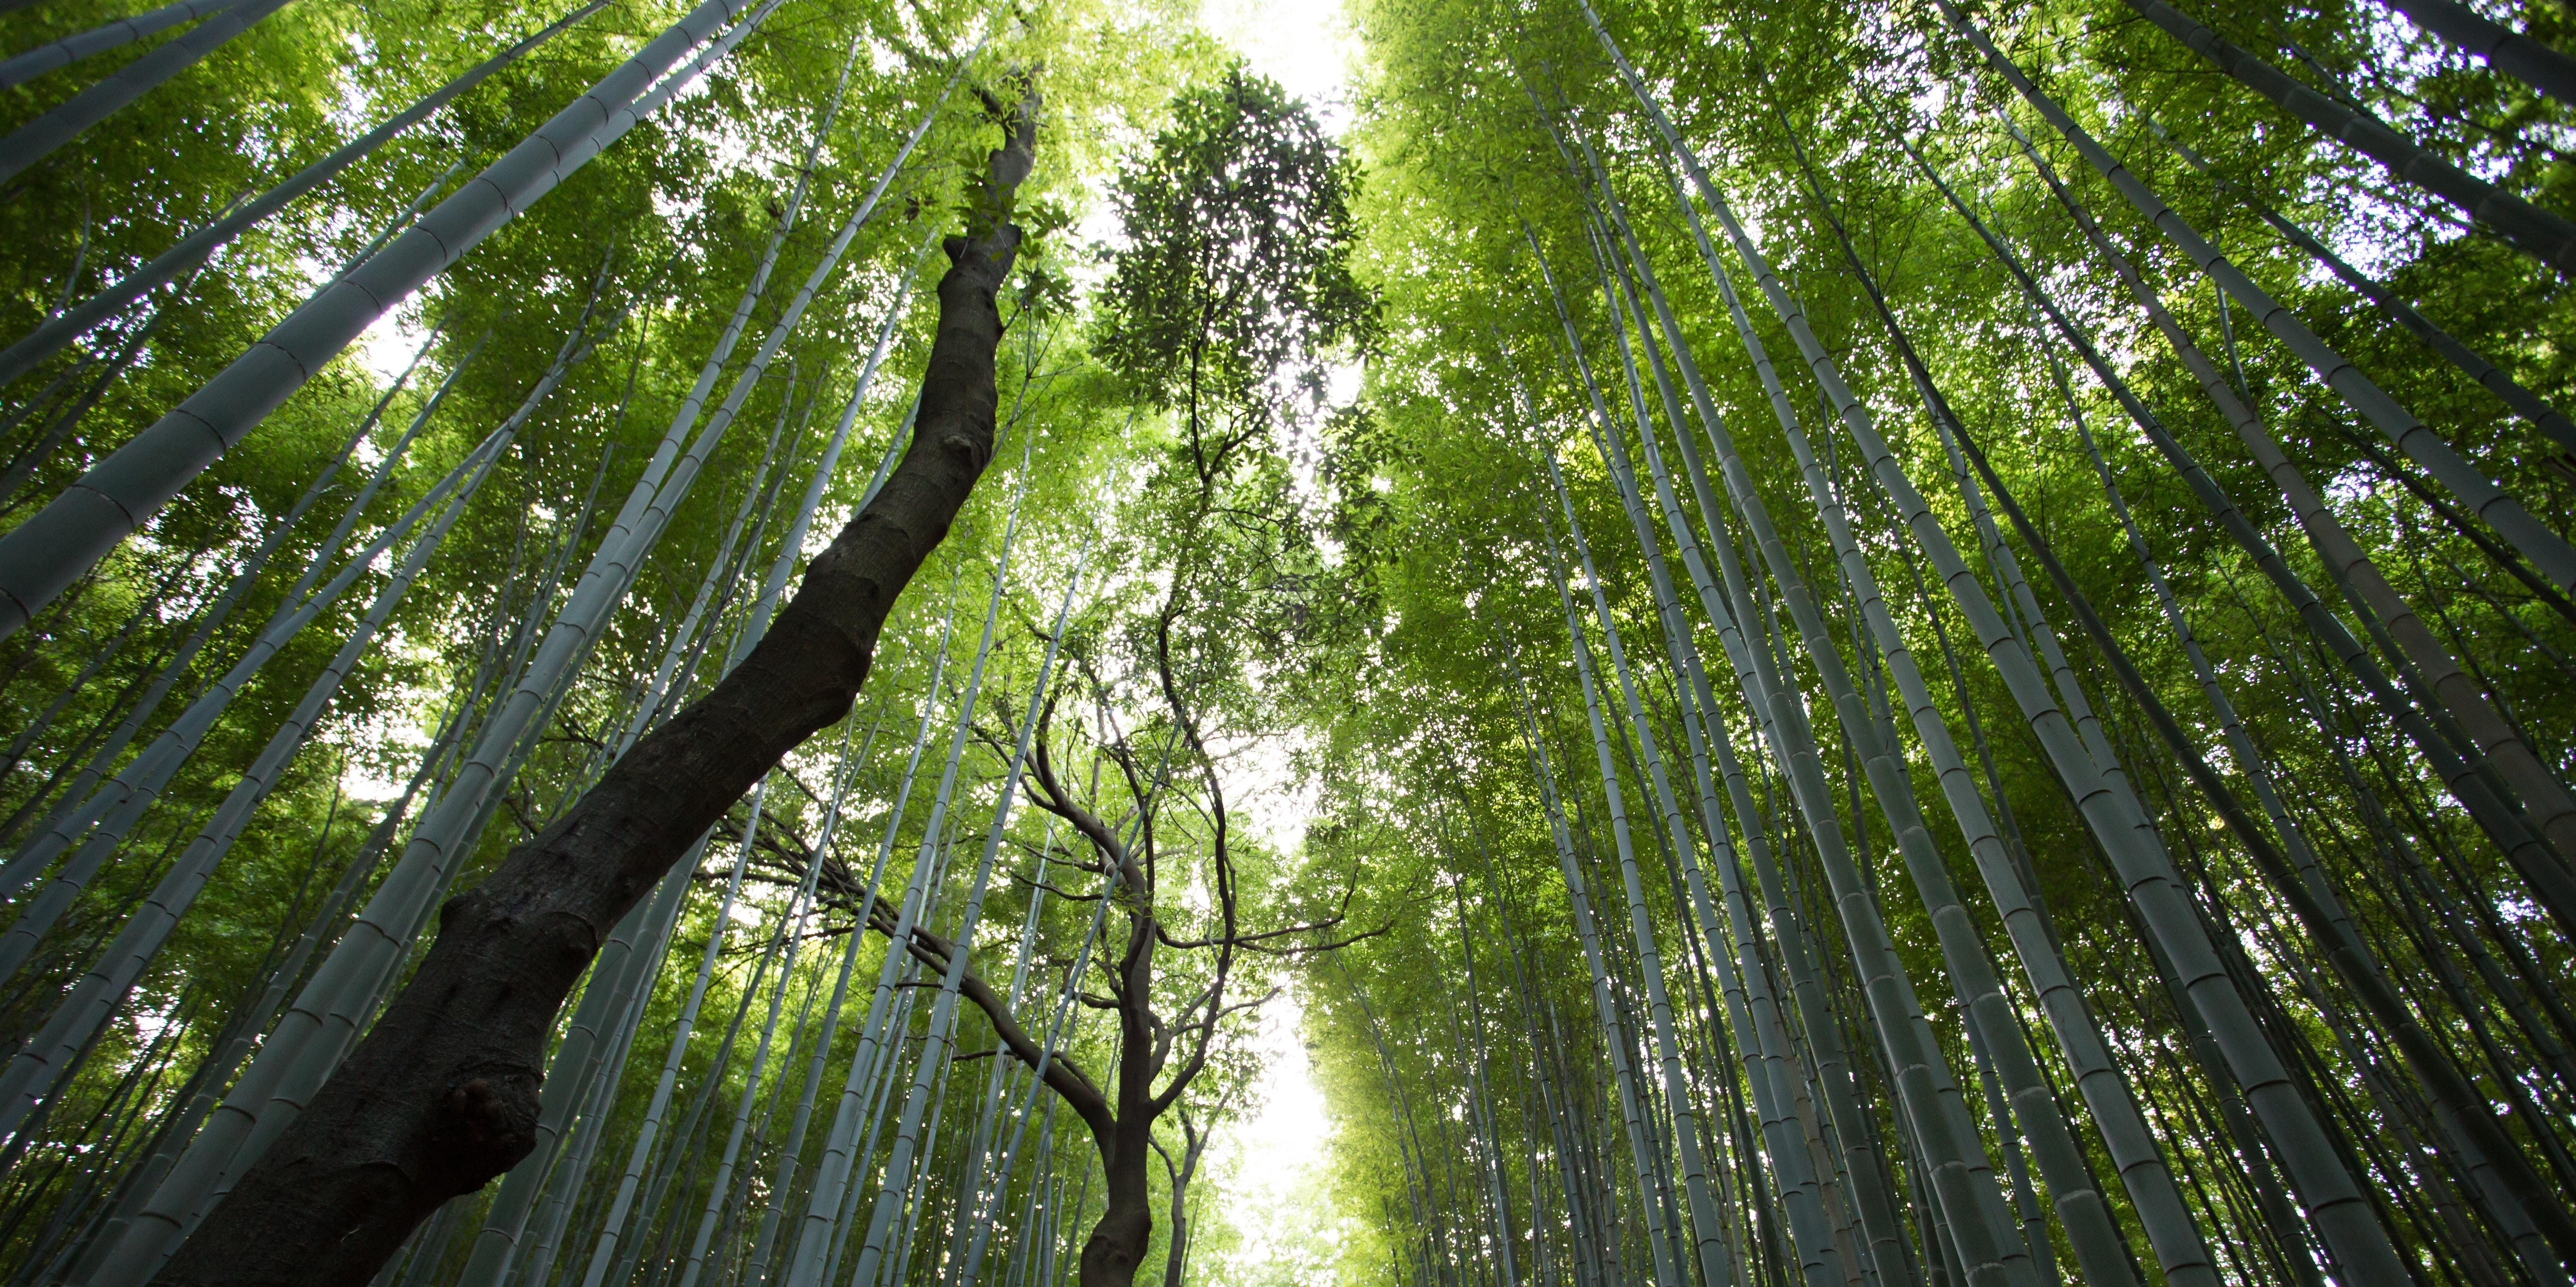 Trees genetically modified climate change